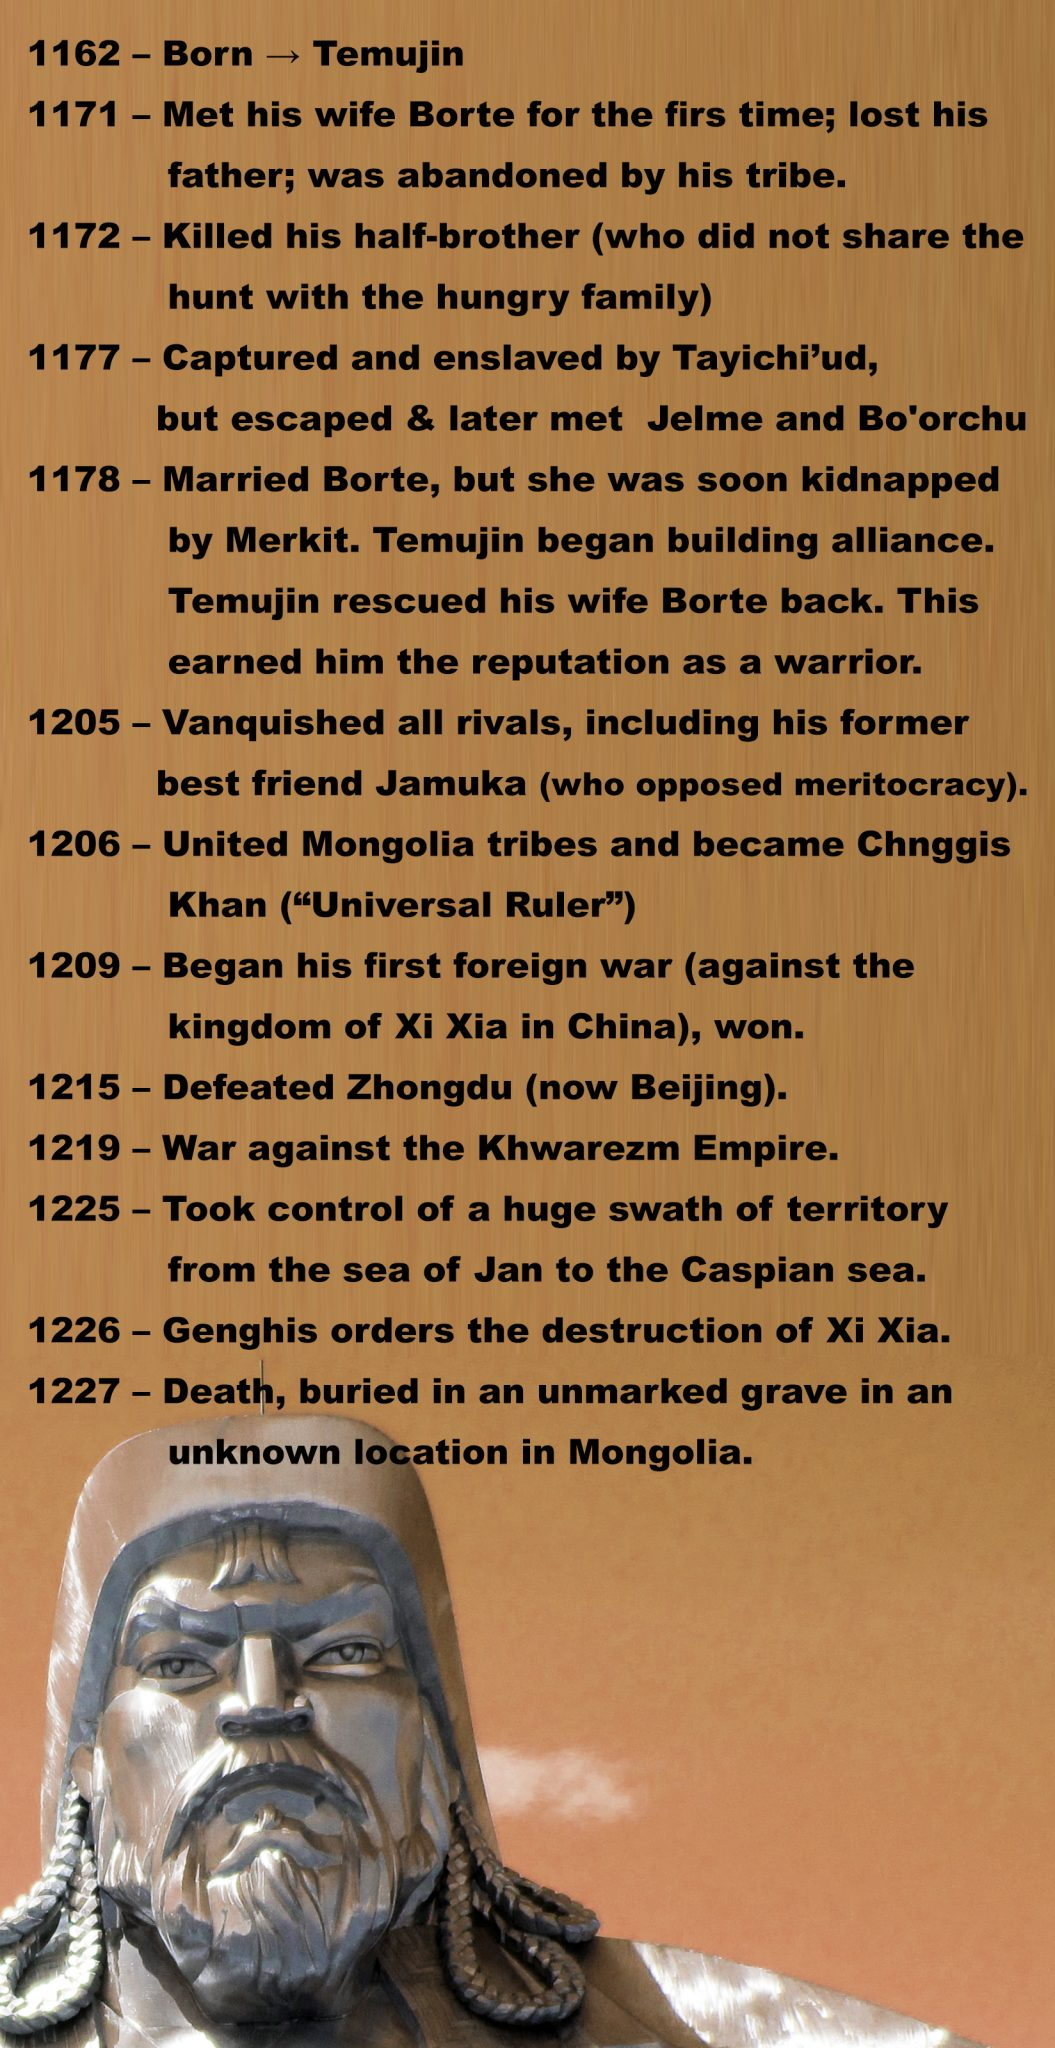 Image2. Timeline of Chinggis Khan compiled from various sources.